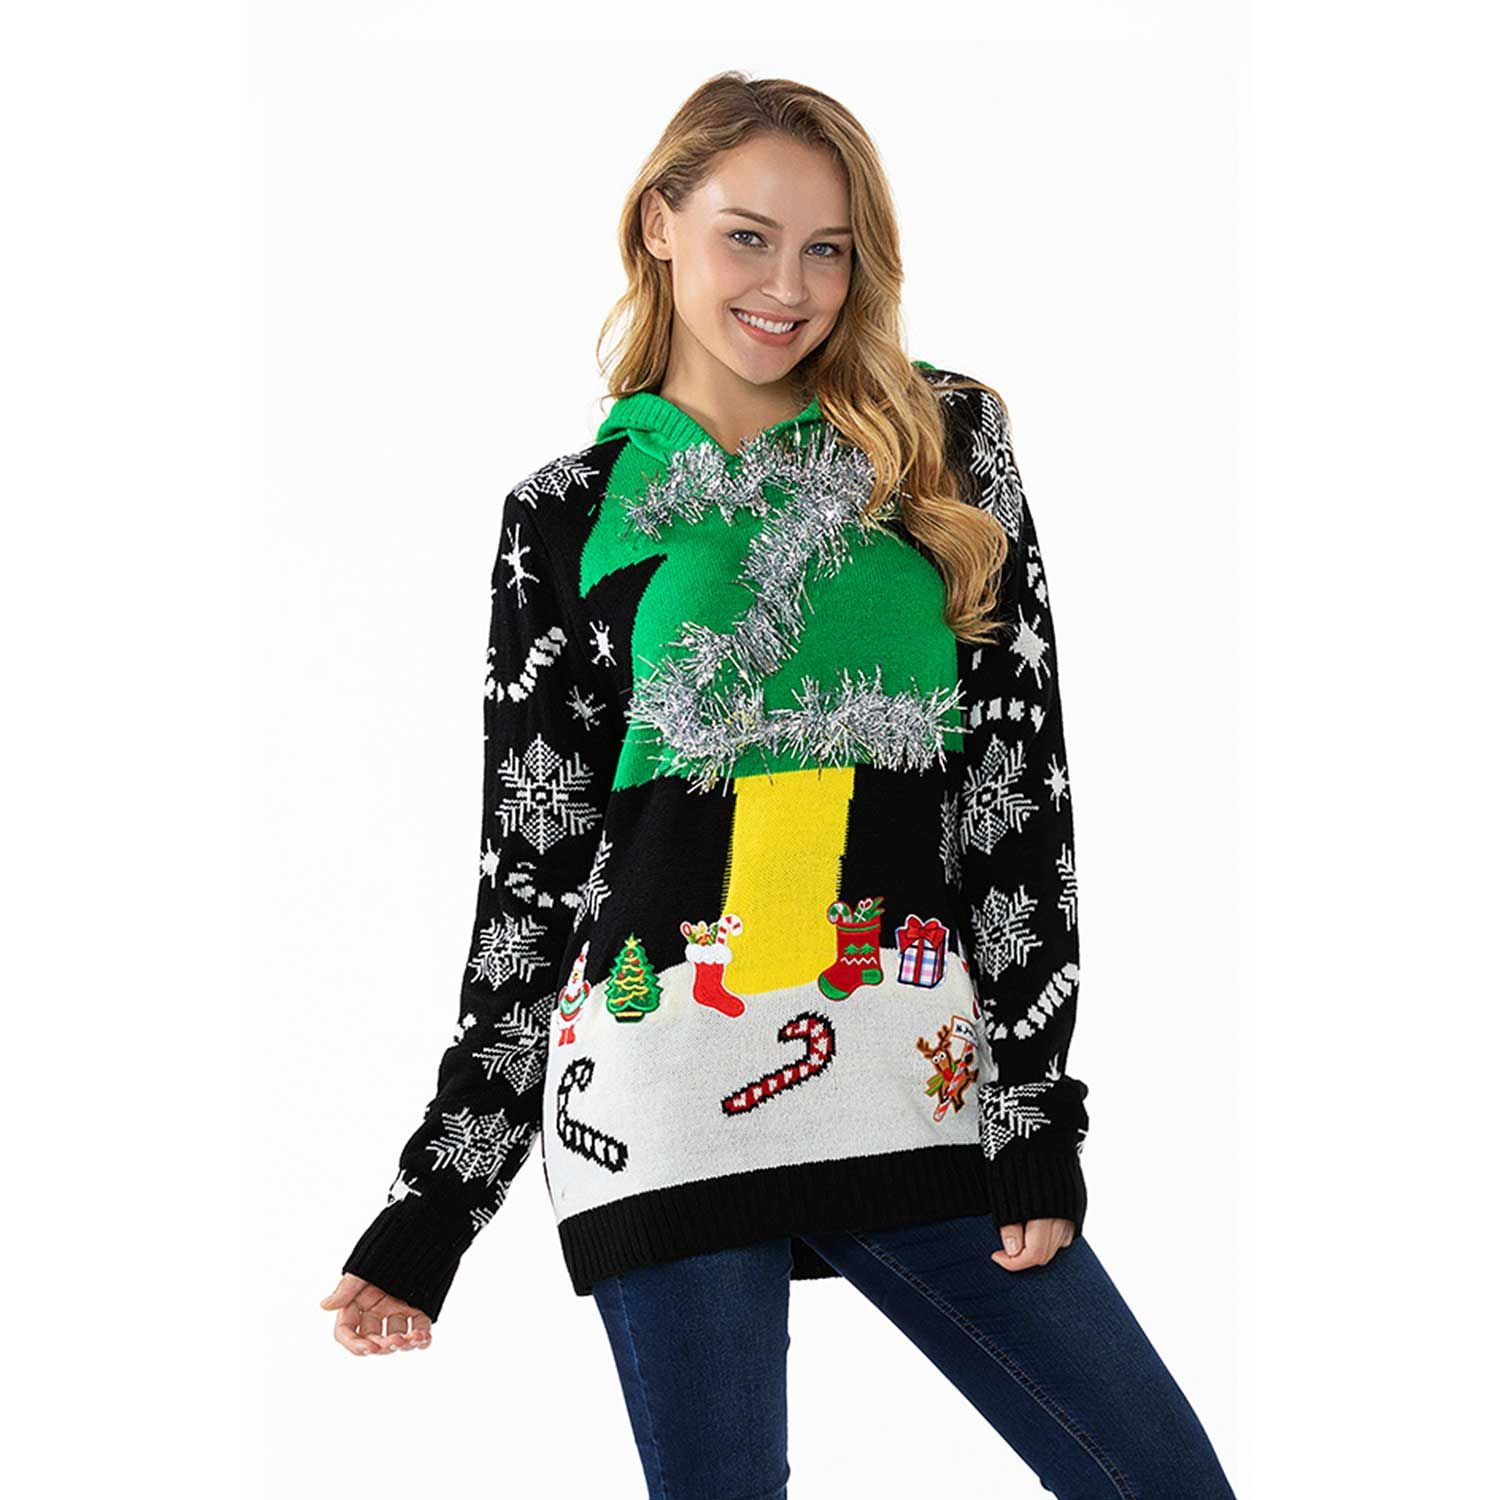 21d2272afae7b Ahegao men women ugly christmas sweater 3d printed graphic pullover ...